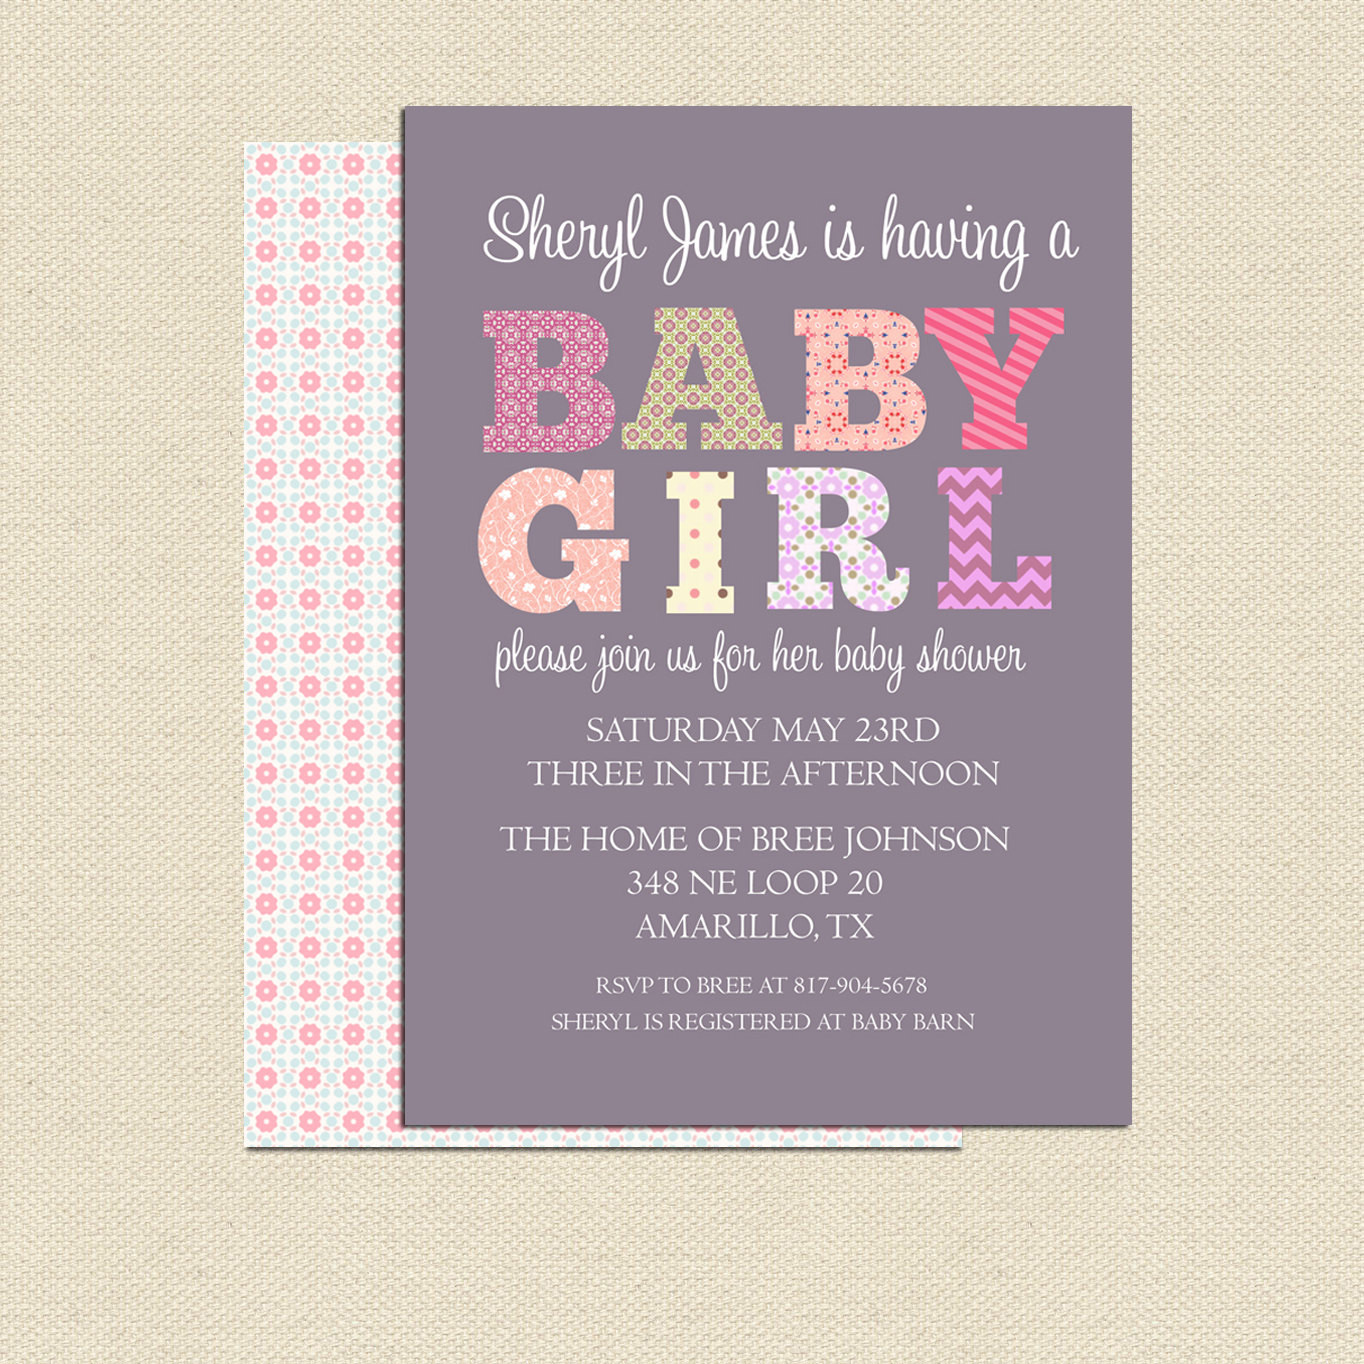 Best ideas about DIY Baby Shower Invitation . Save or Pin DIY Printable Baby Shower Invitation For Girl No 2 Now.